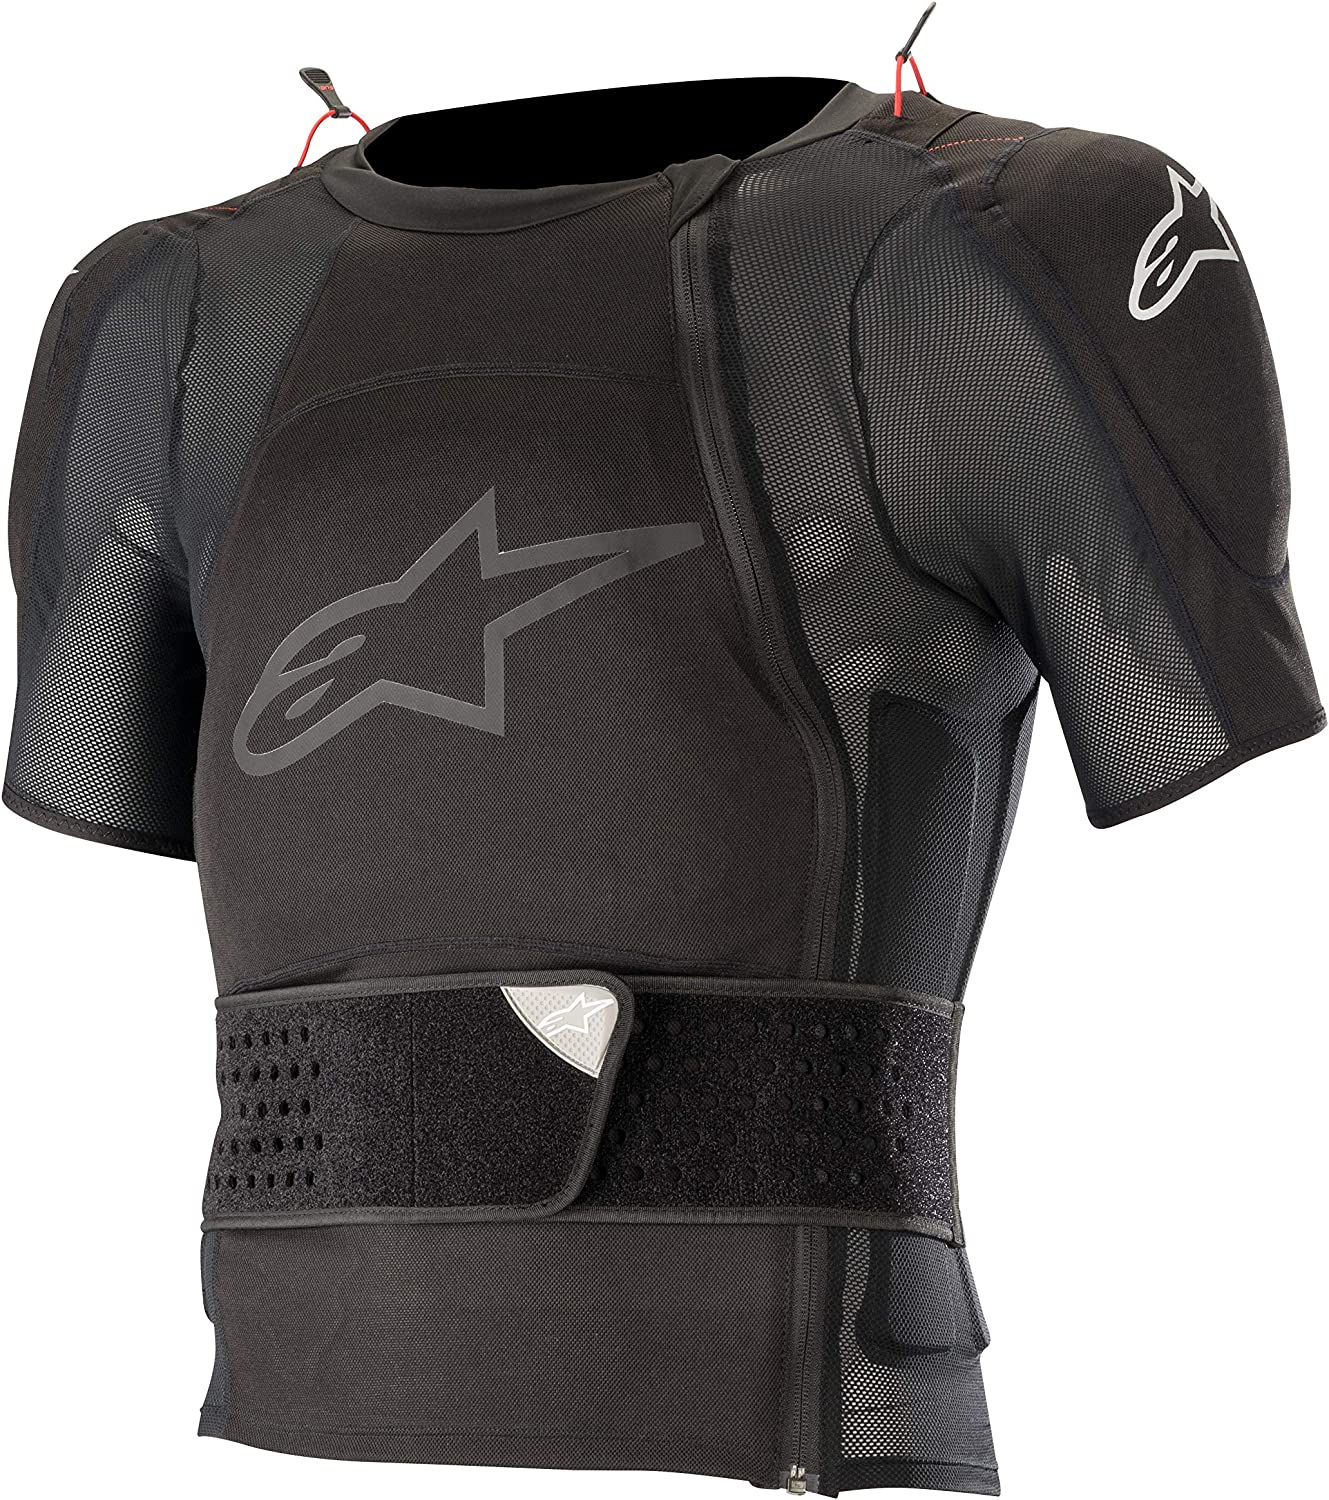 Alpine Stars Sequence Protection Jacket Short Sleeve Torso Protection Medium//Large Black